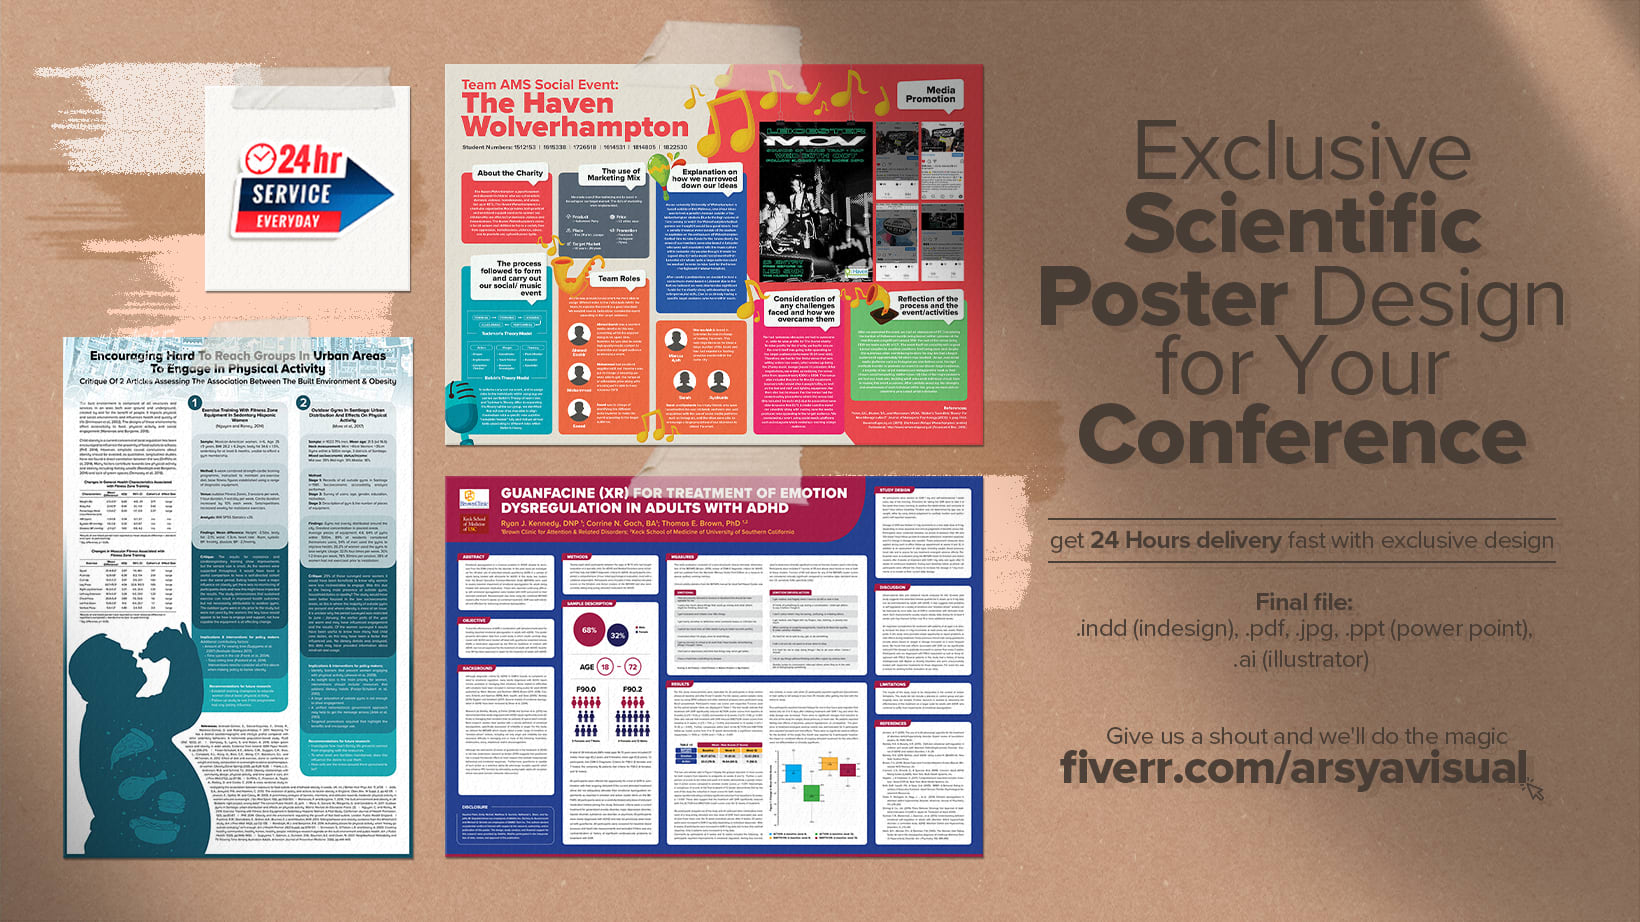 make research academic scientific poster presentation power point for conference